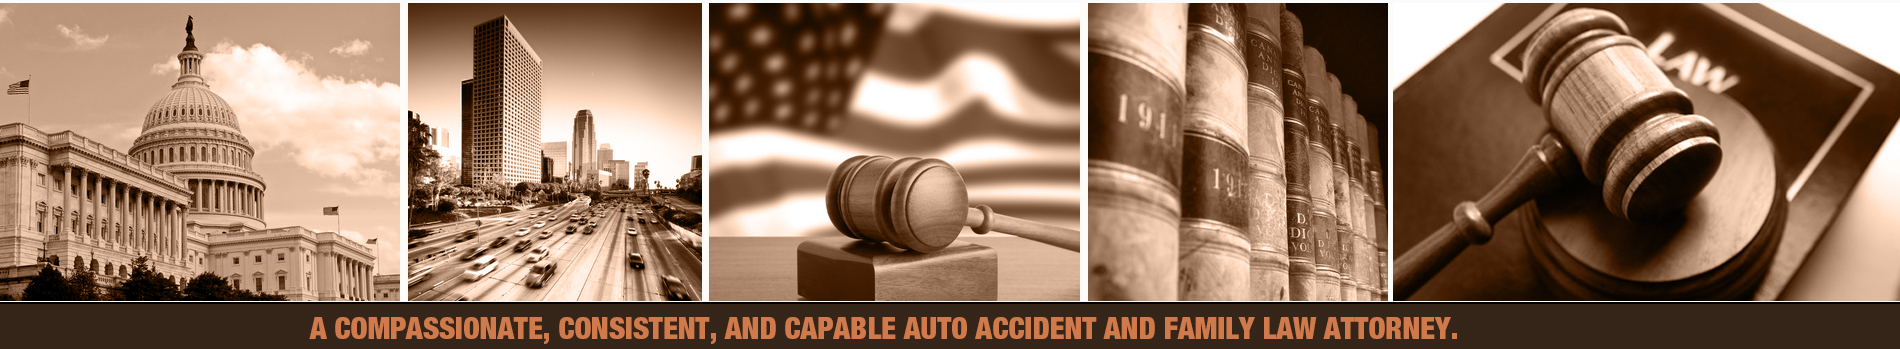 A compassionate, consistent, and capable auto accident and family law attorney